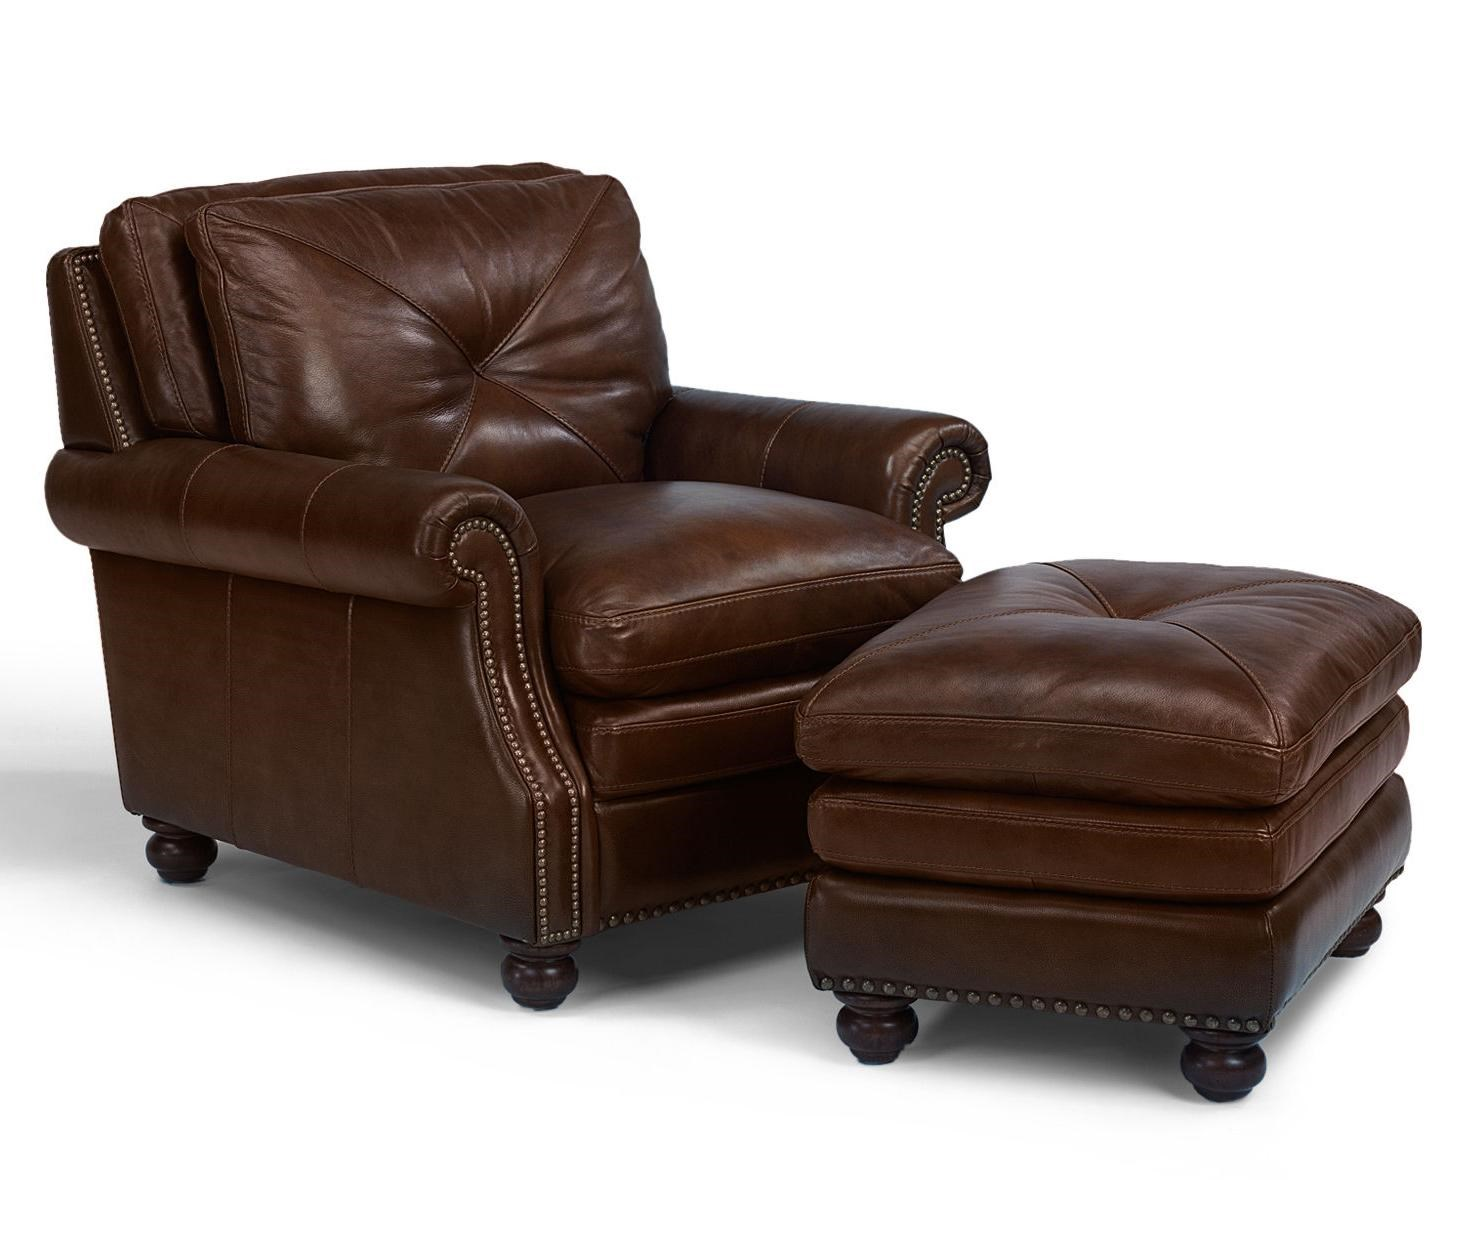 Leather Chairs With Ottoman Latitudes Suffolk Leather Chair And Ottoman Combination Set With Nailhead Trim By Flexsteel At Dunk Bright Furniture